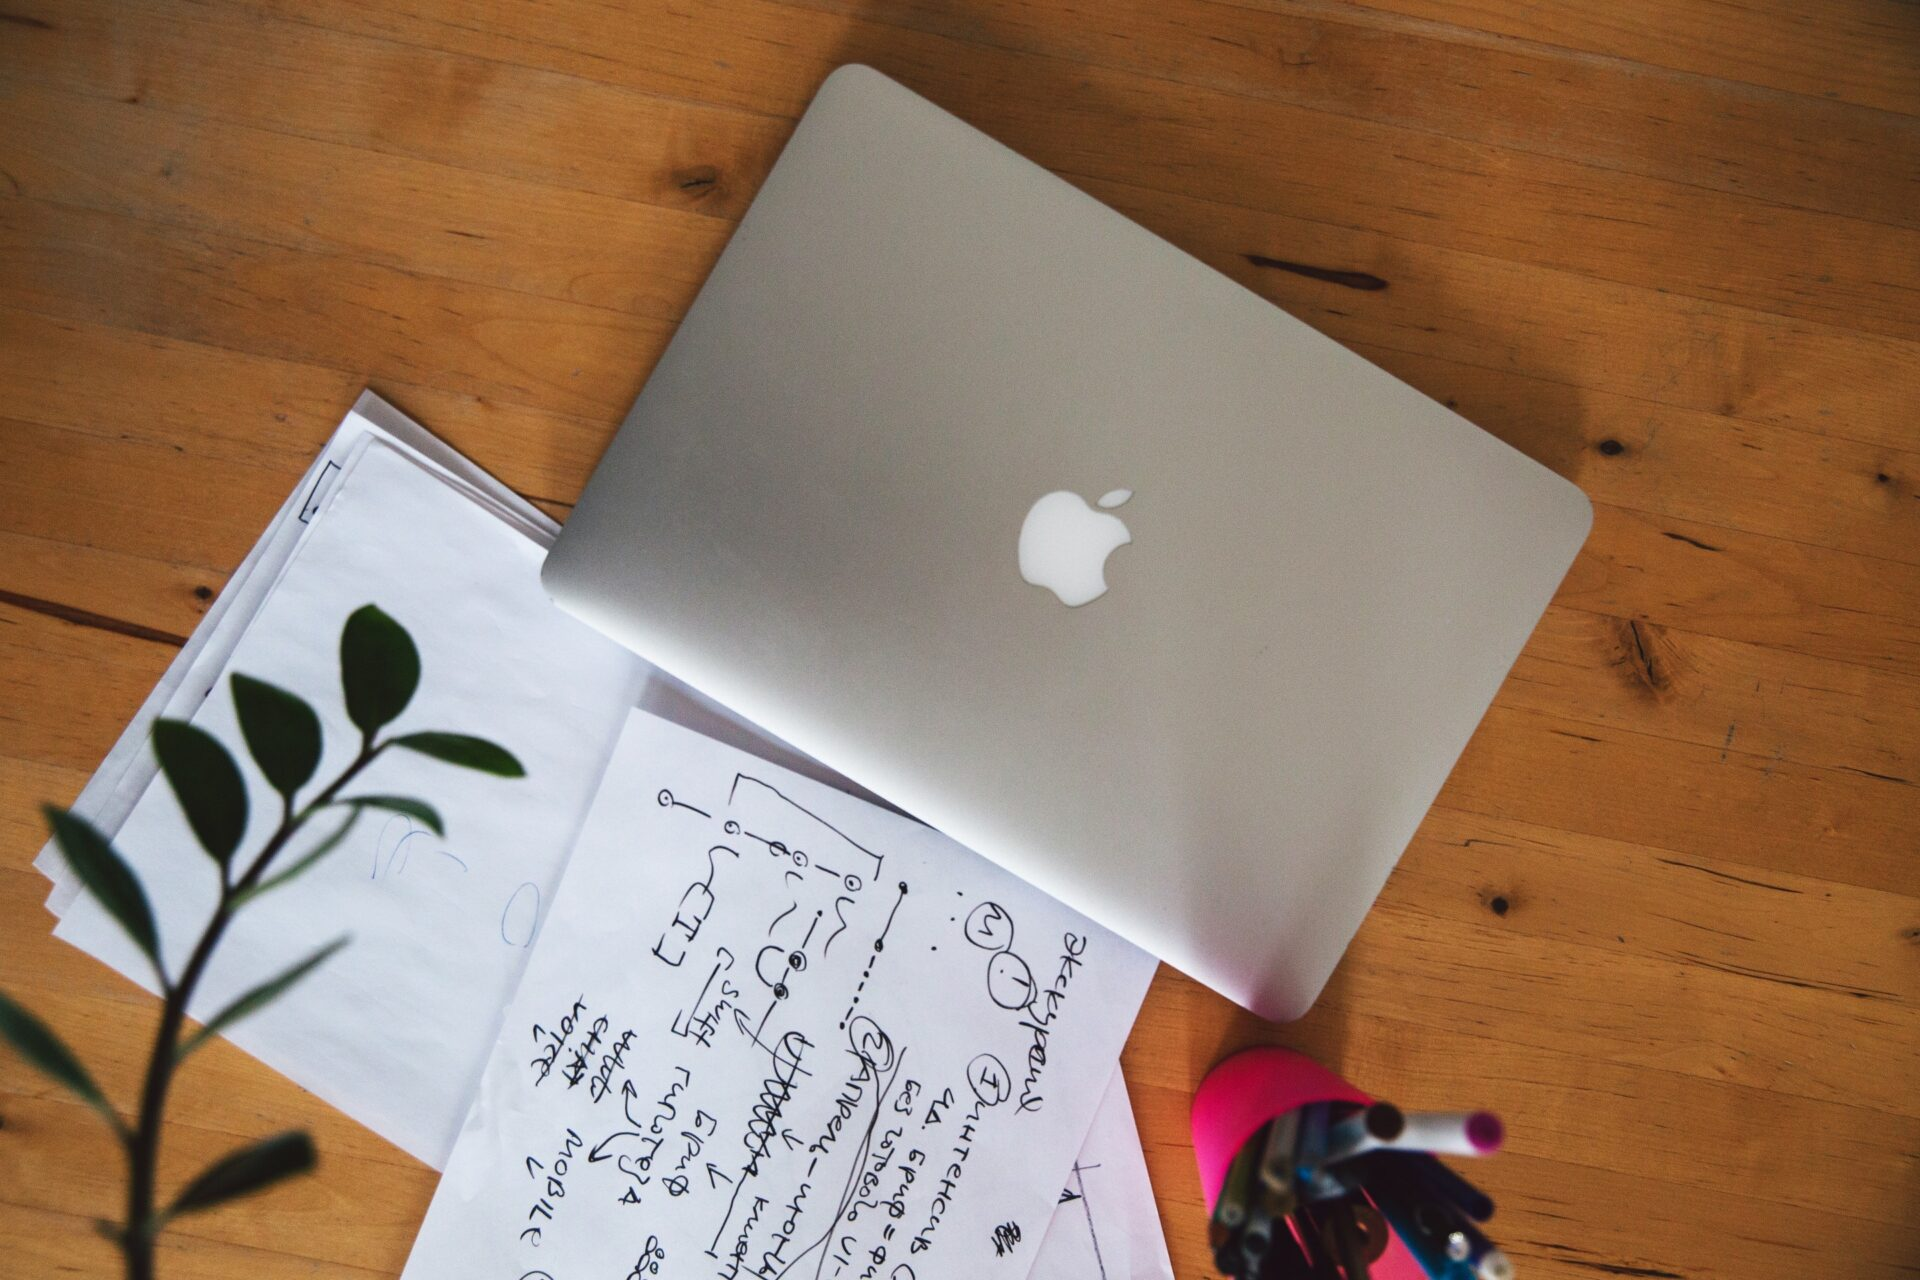 A laptop and a notebook on a table for planning.